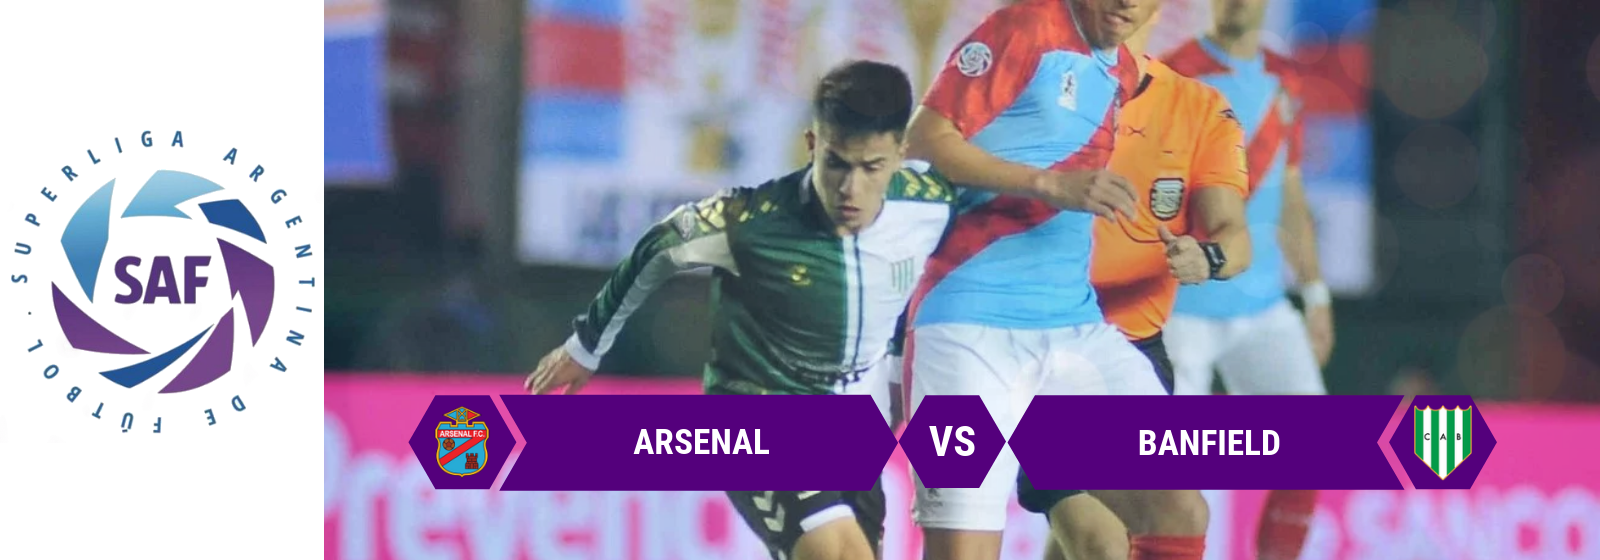 Copa Argentina Arsenal Vs. Banfield Asian Connect